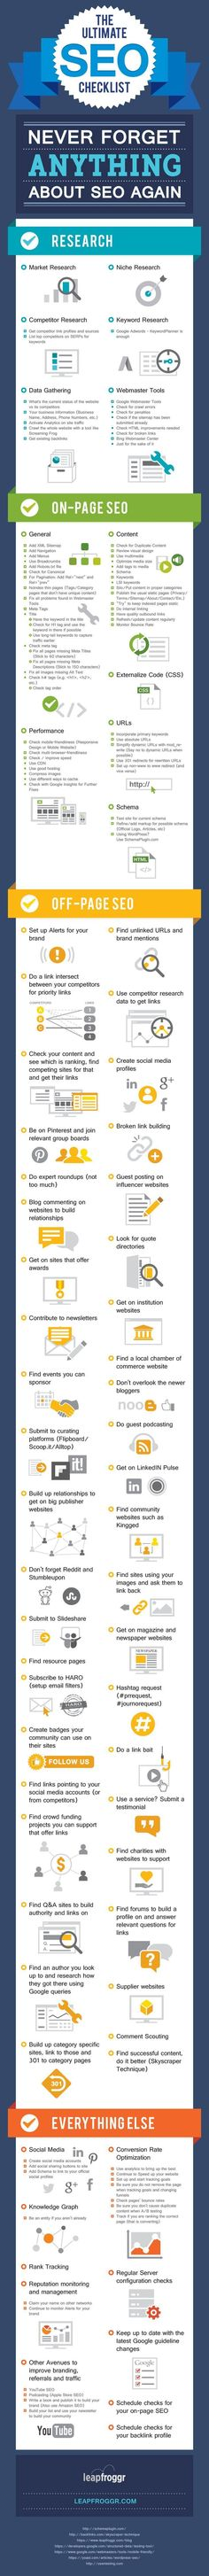 [INFOGRAPHIC] Never Forget Anything About SEO Again—Research; On-page; Off-page; Misc; Details> #SEOTraining